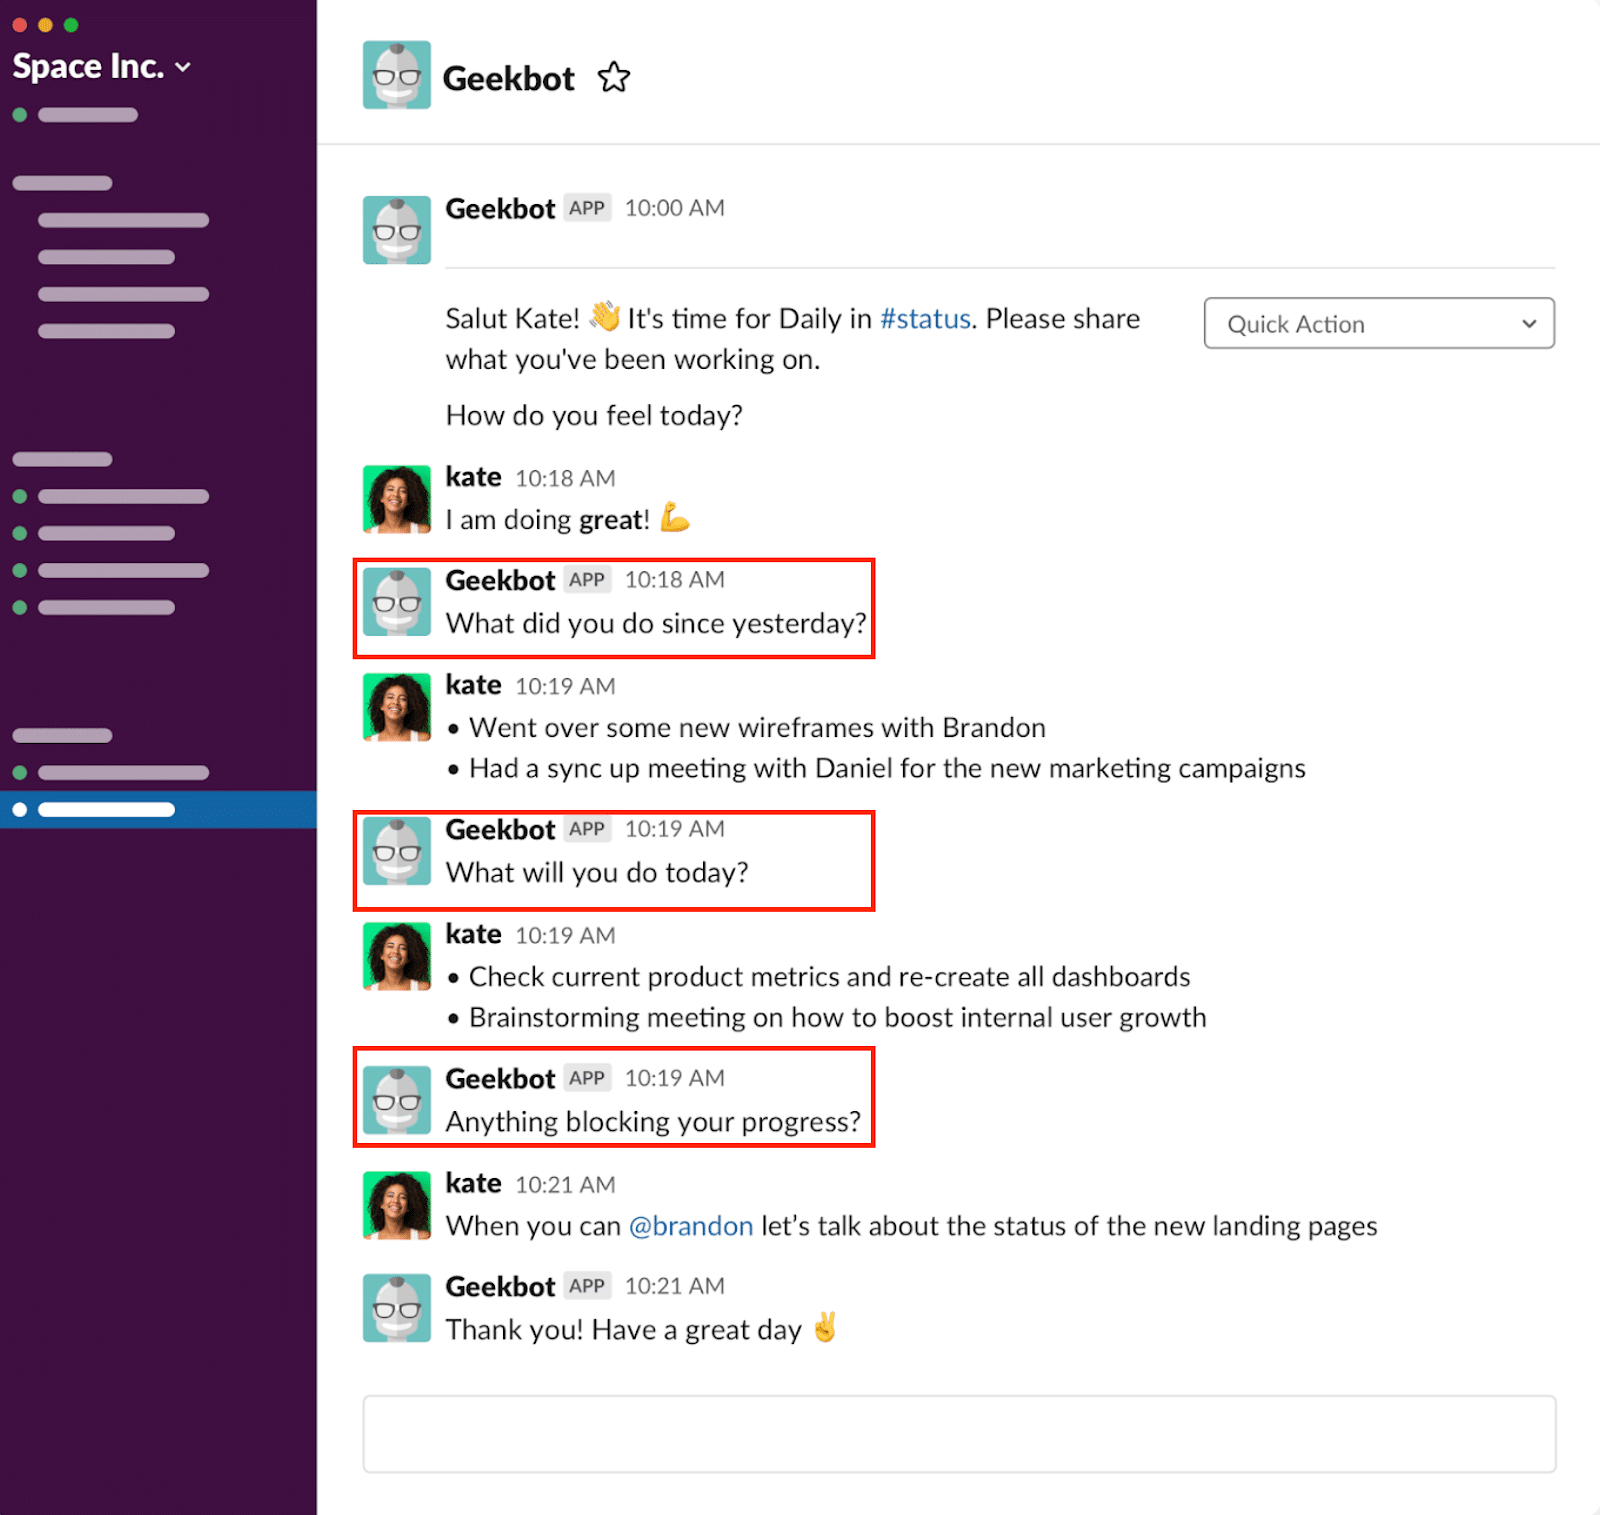 Geekbot's 3 automated questions get sent to the Slack channel along with the teams answers.